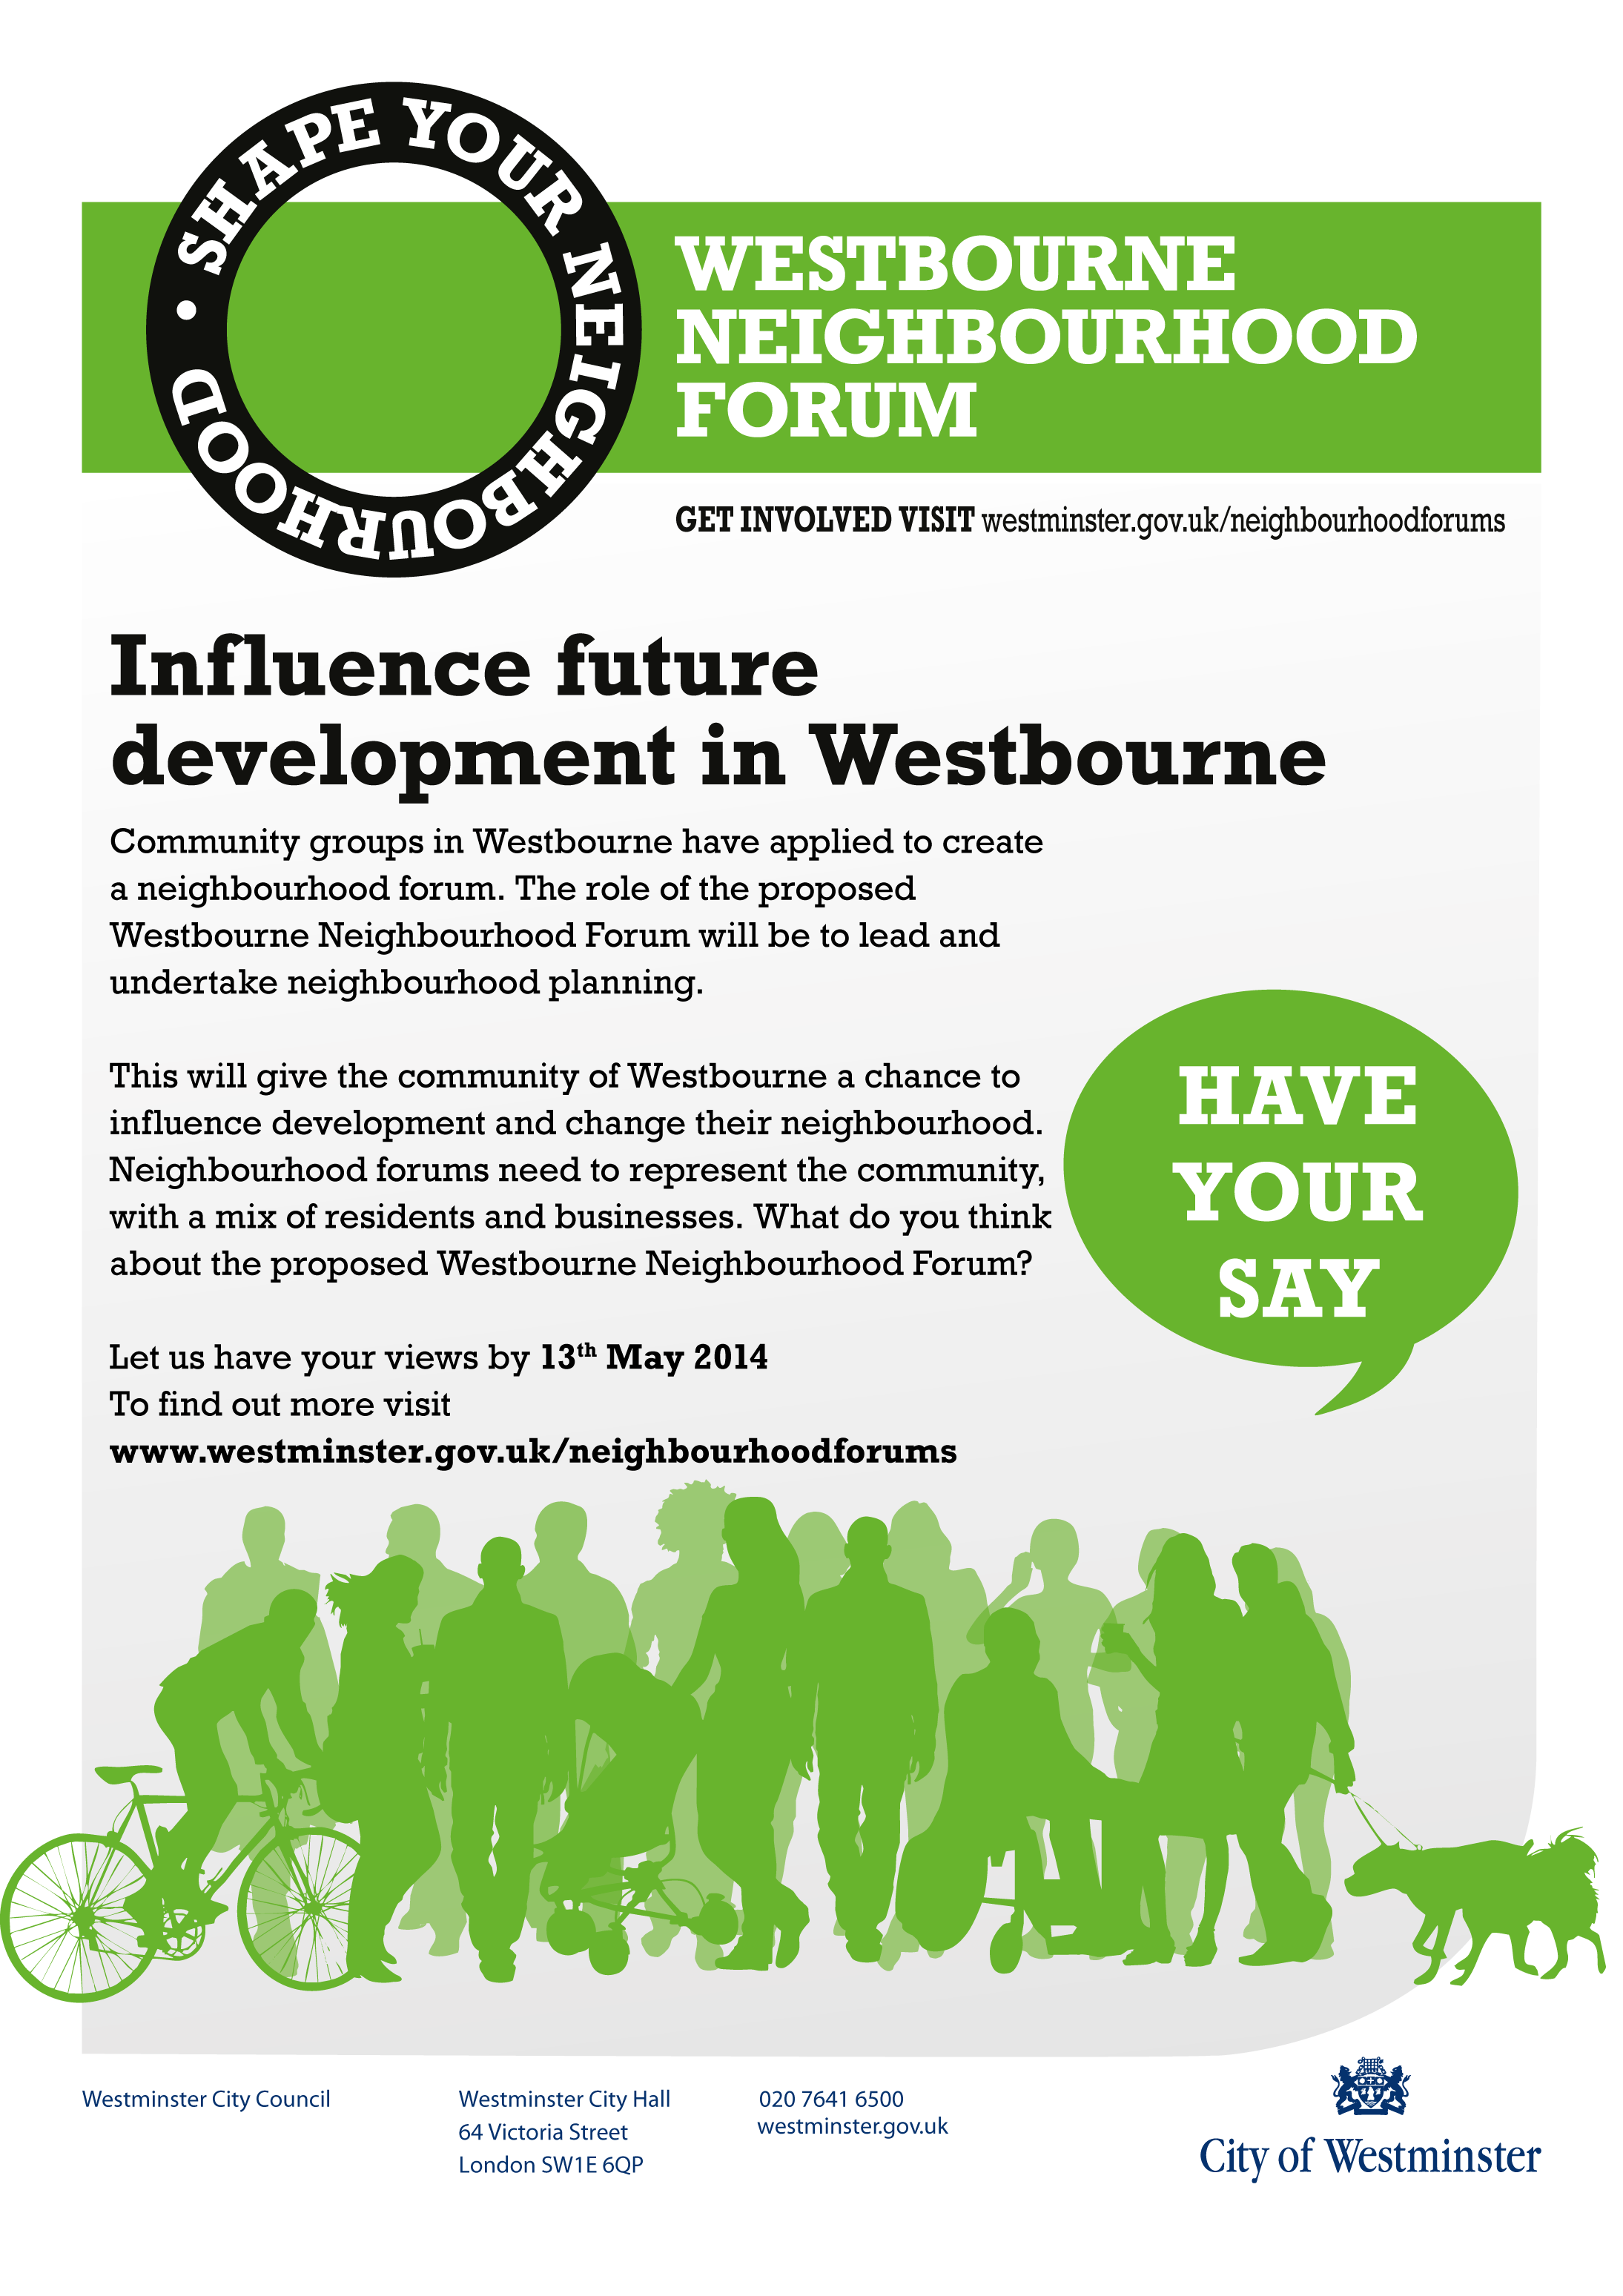 Westbourne Forum and Westminster Council consultation